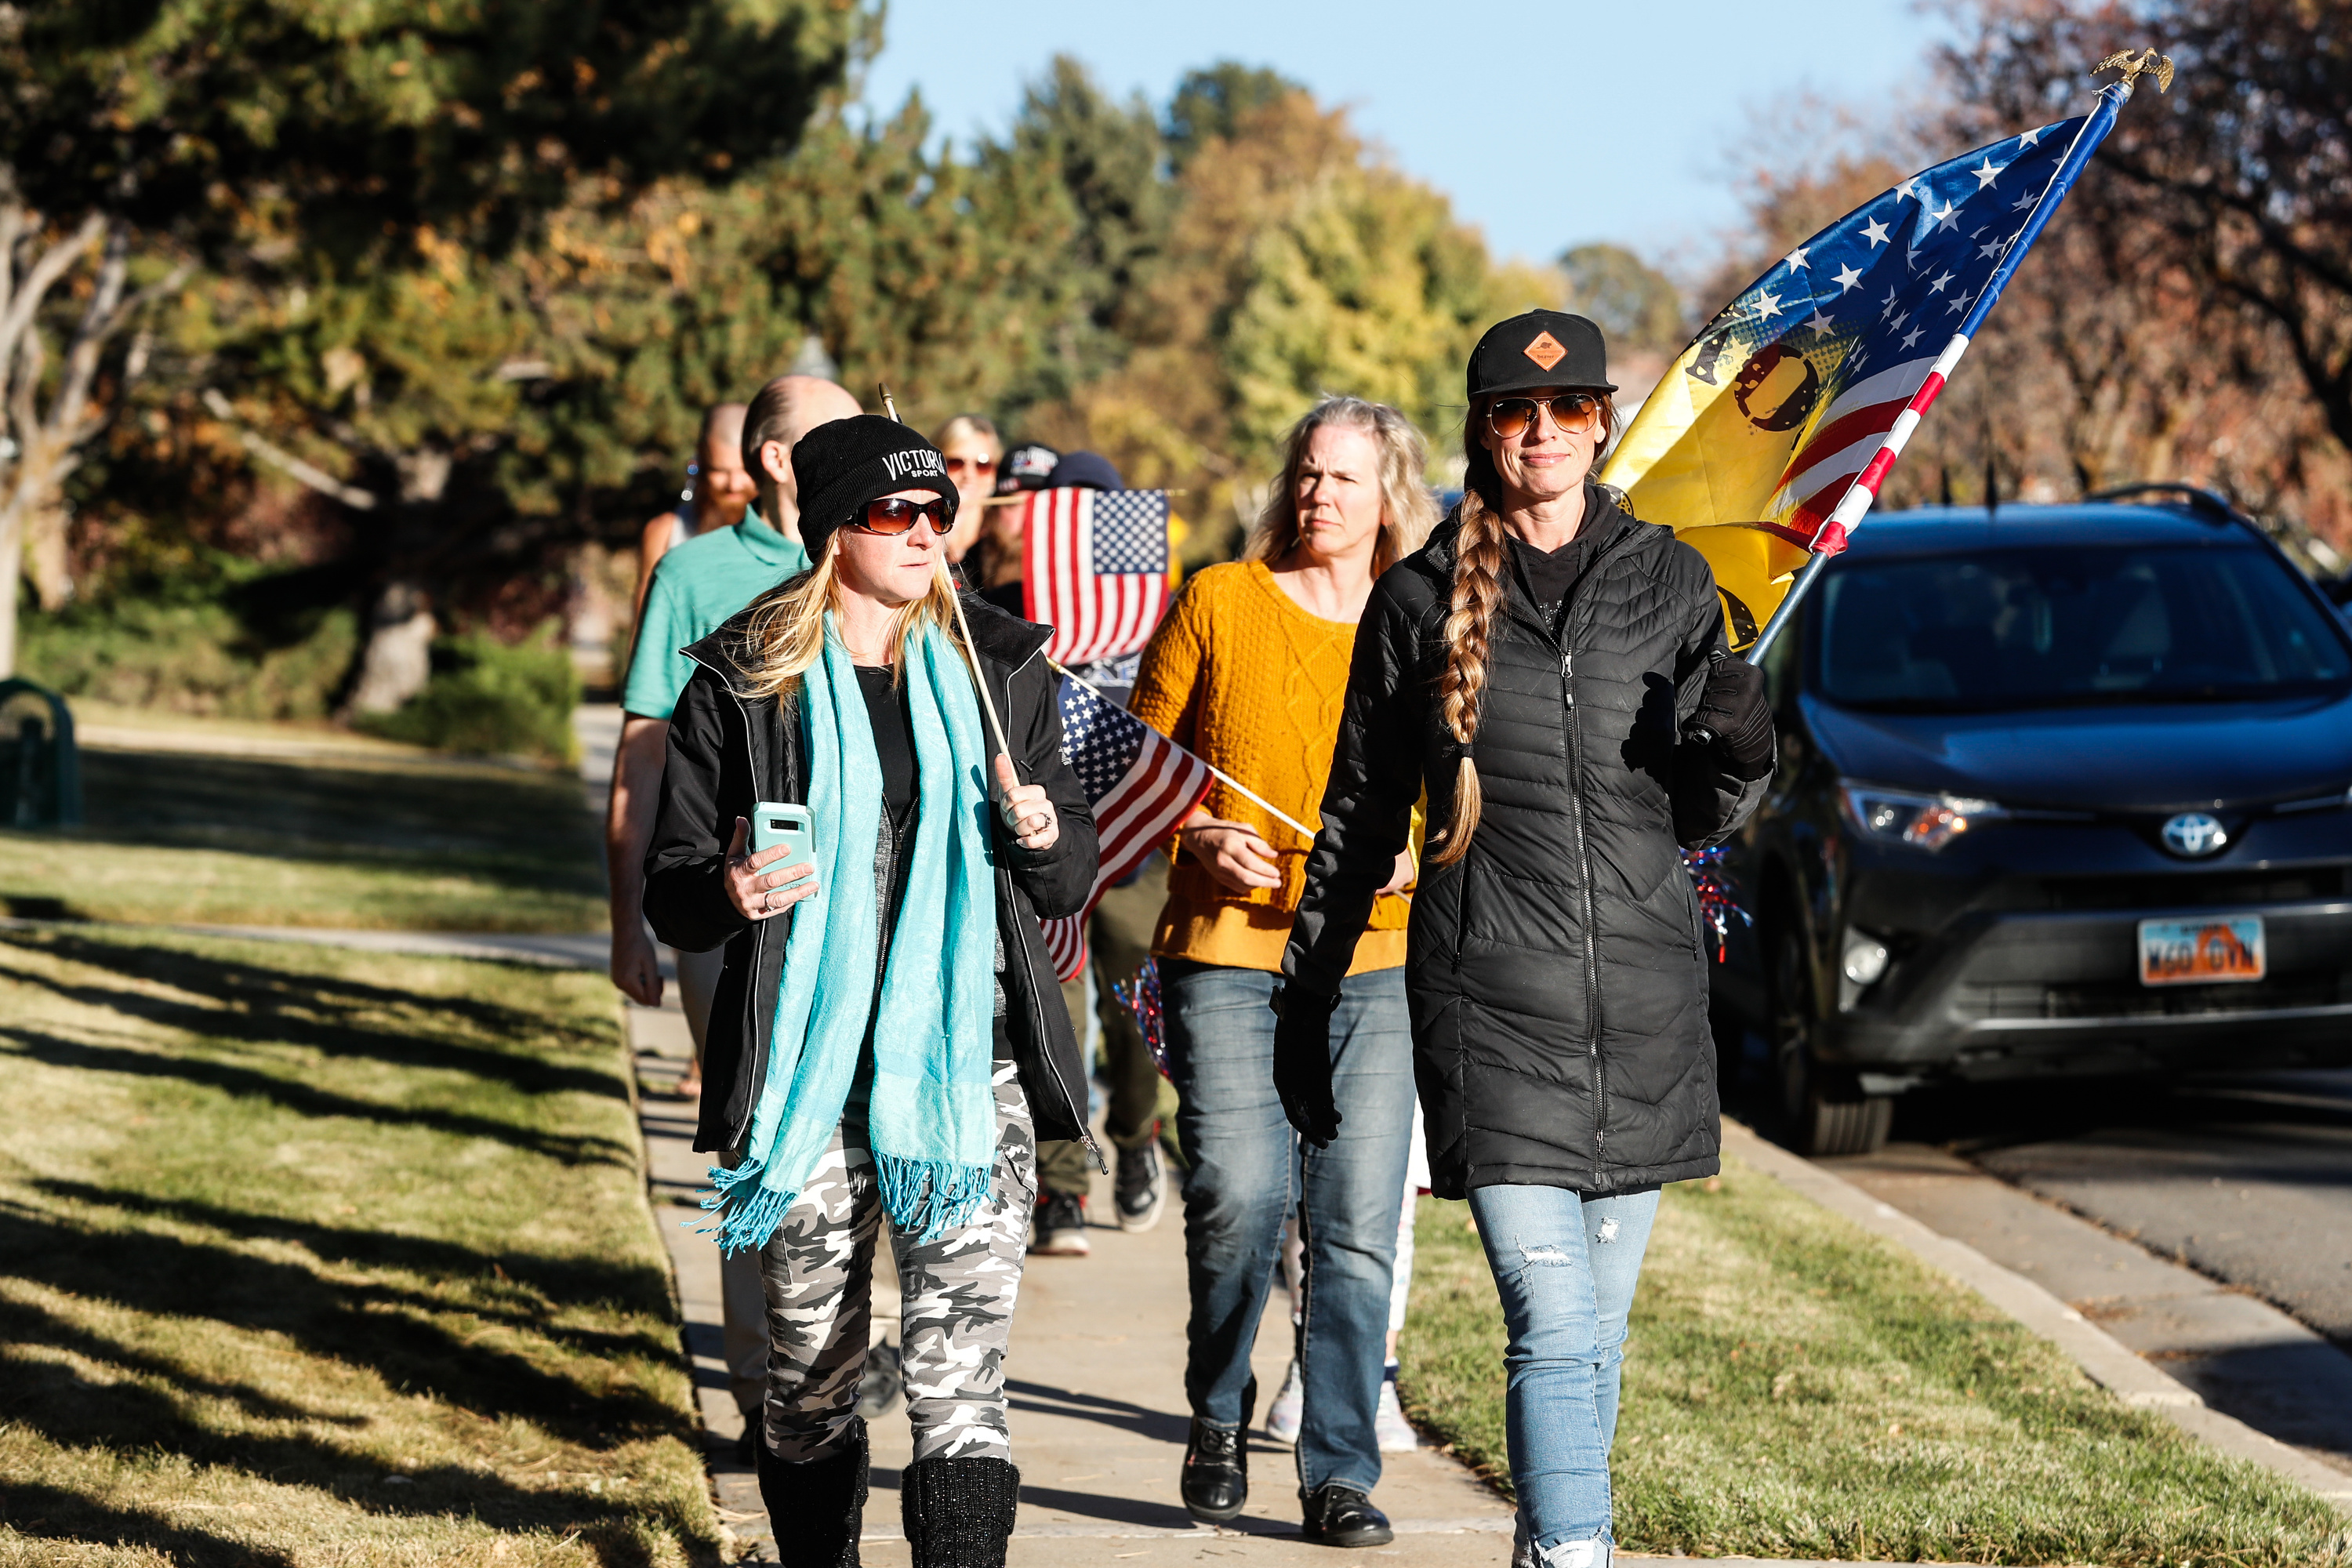 Protesters march towardstate epidemiologist Dr. Angela Dunn's house during a peaceful protest in Salt Lake City on Thursday, Oct. 29, 2020.